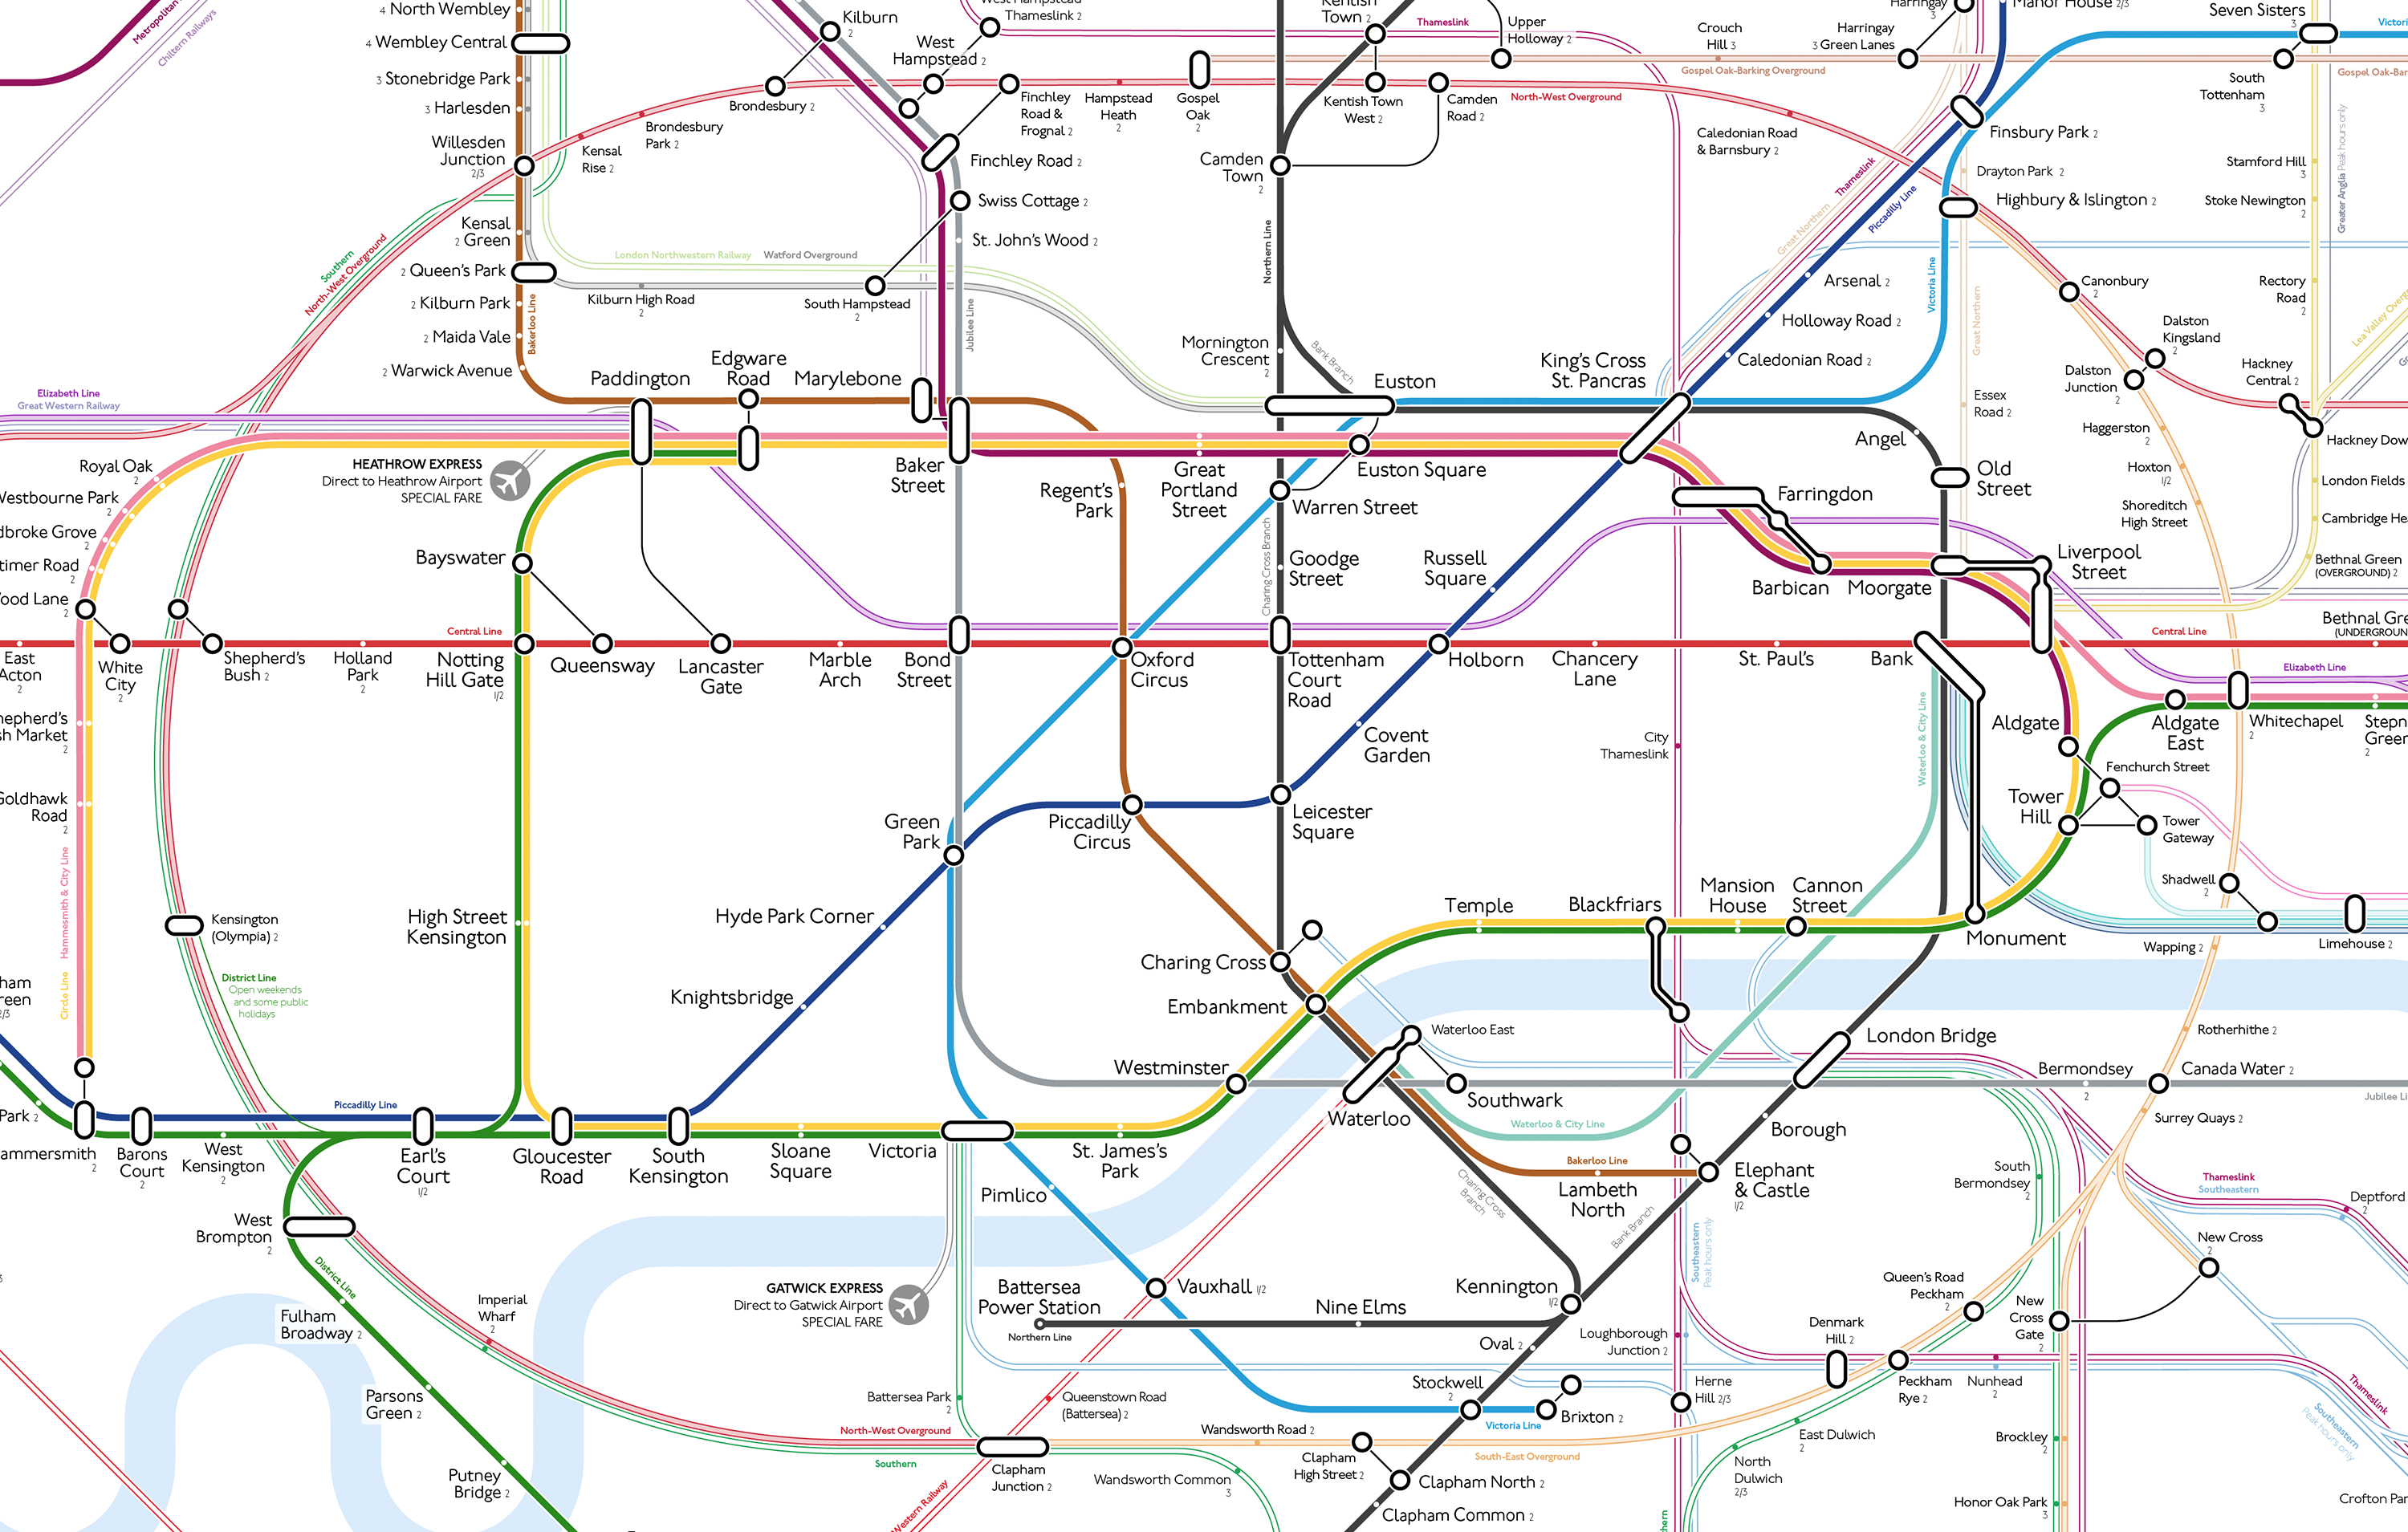 Better Than Beck? Decluttered Tube Map Wins Fans (And Haters ...